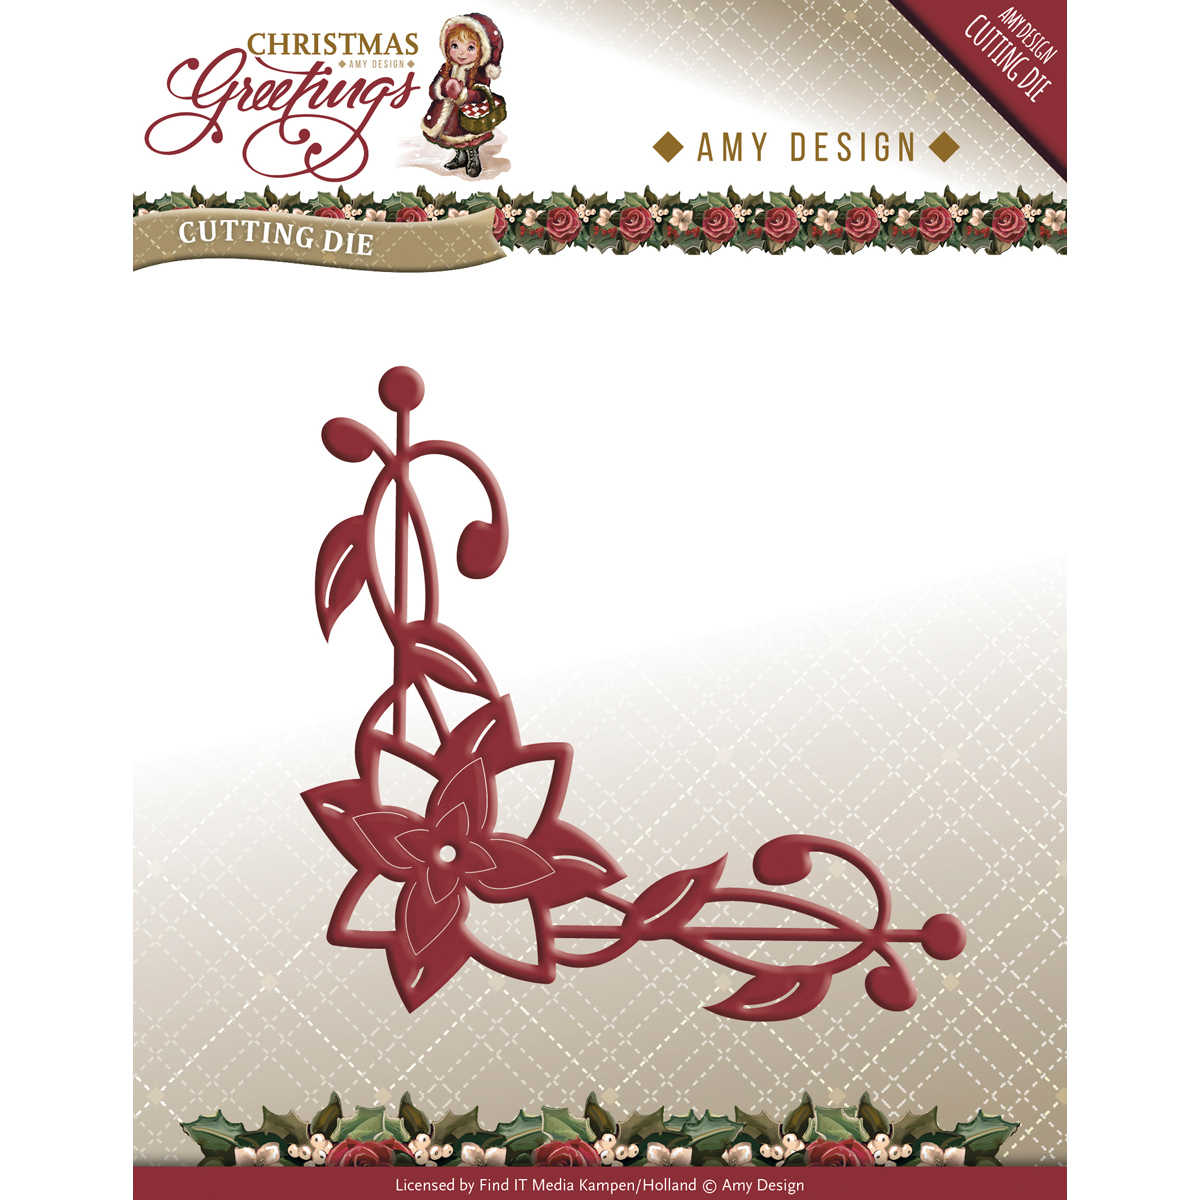 Poinsettia Corner - Find It Trading Amy Design Christmas Greetings Die